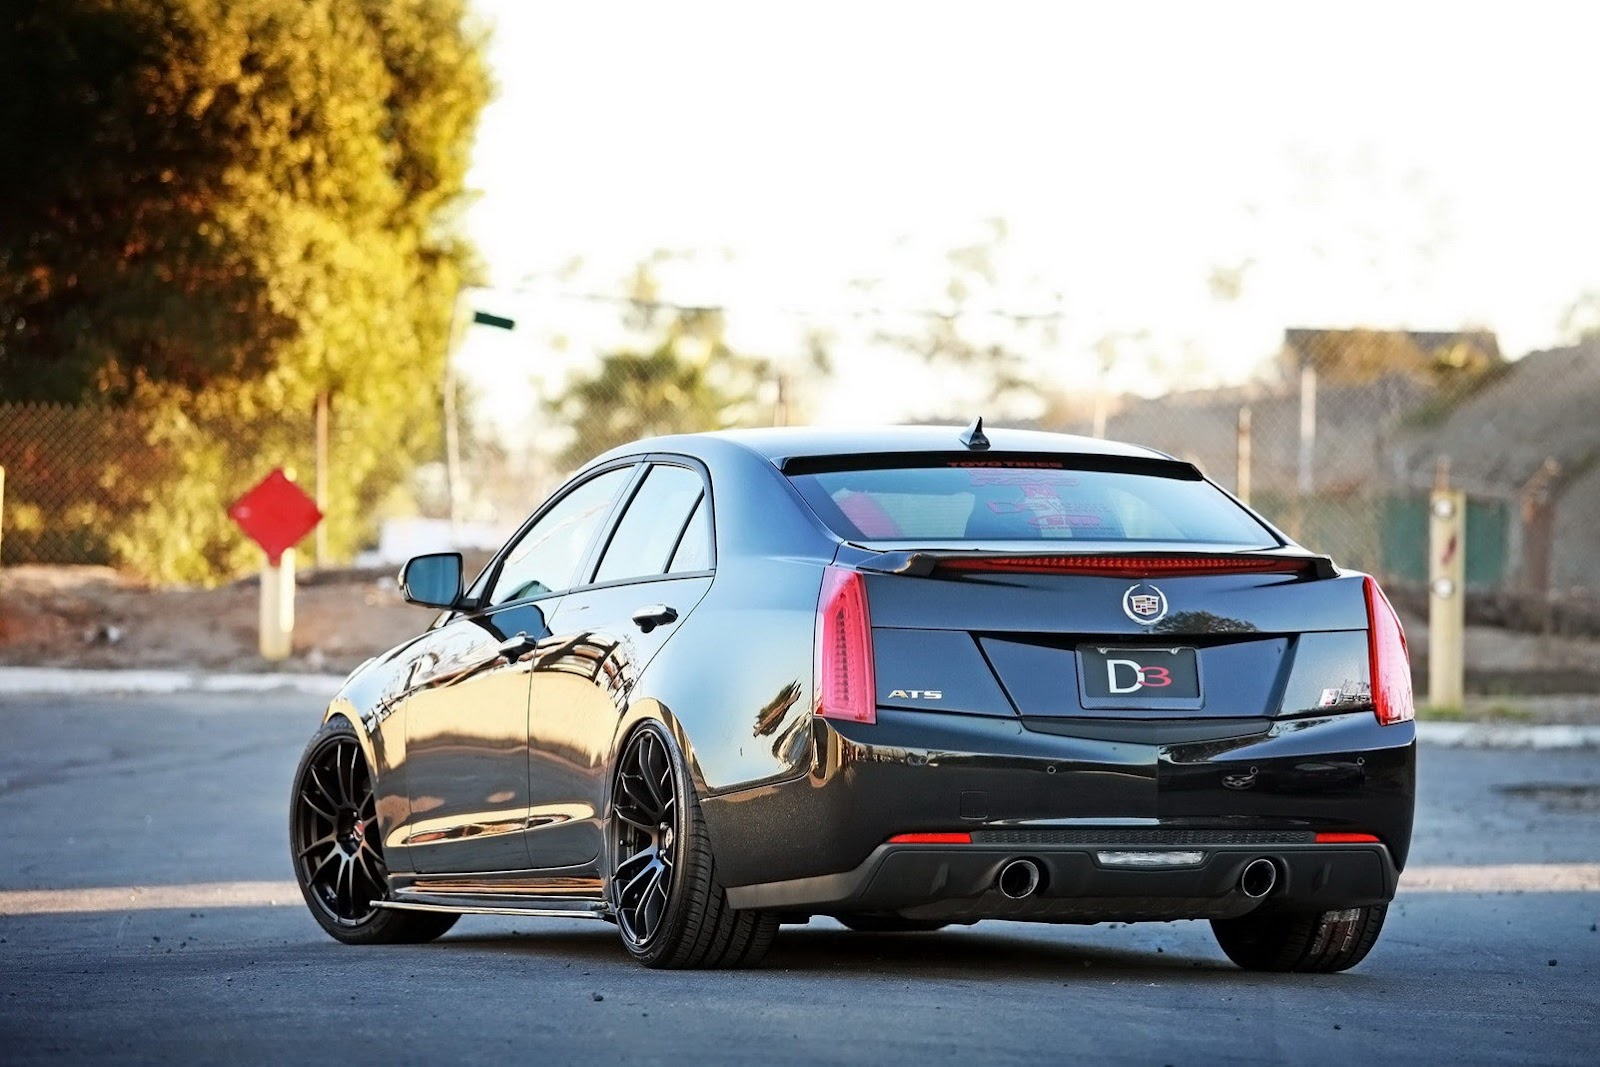 Cadillac ATS modifications